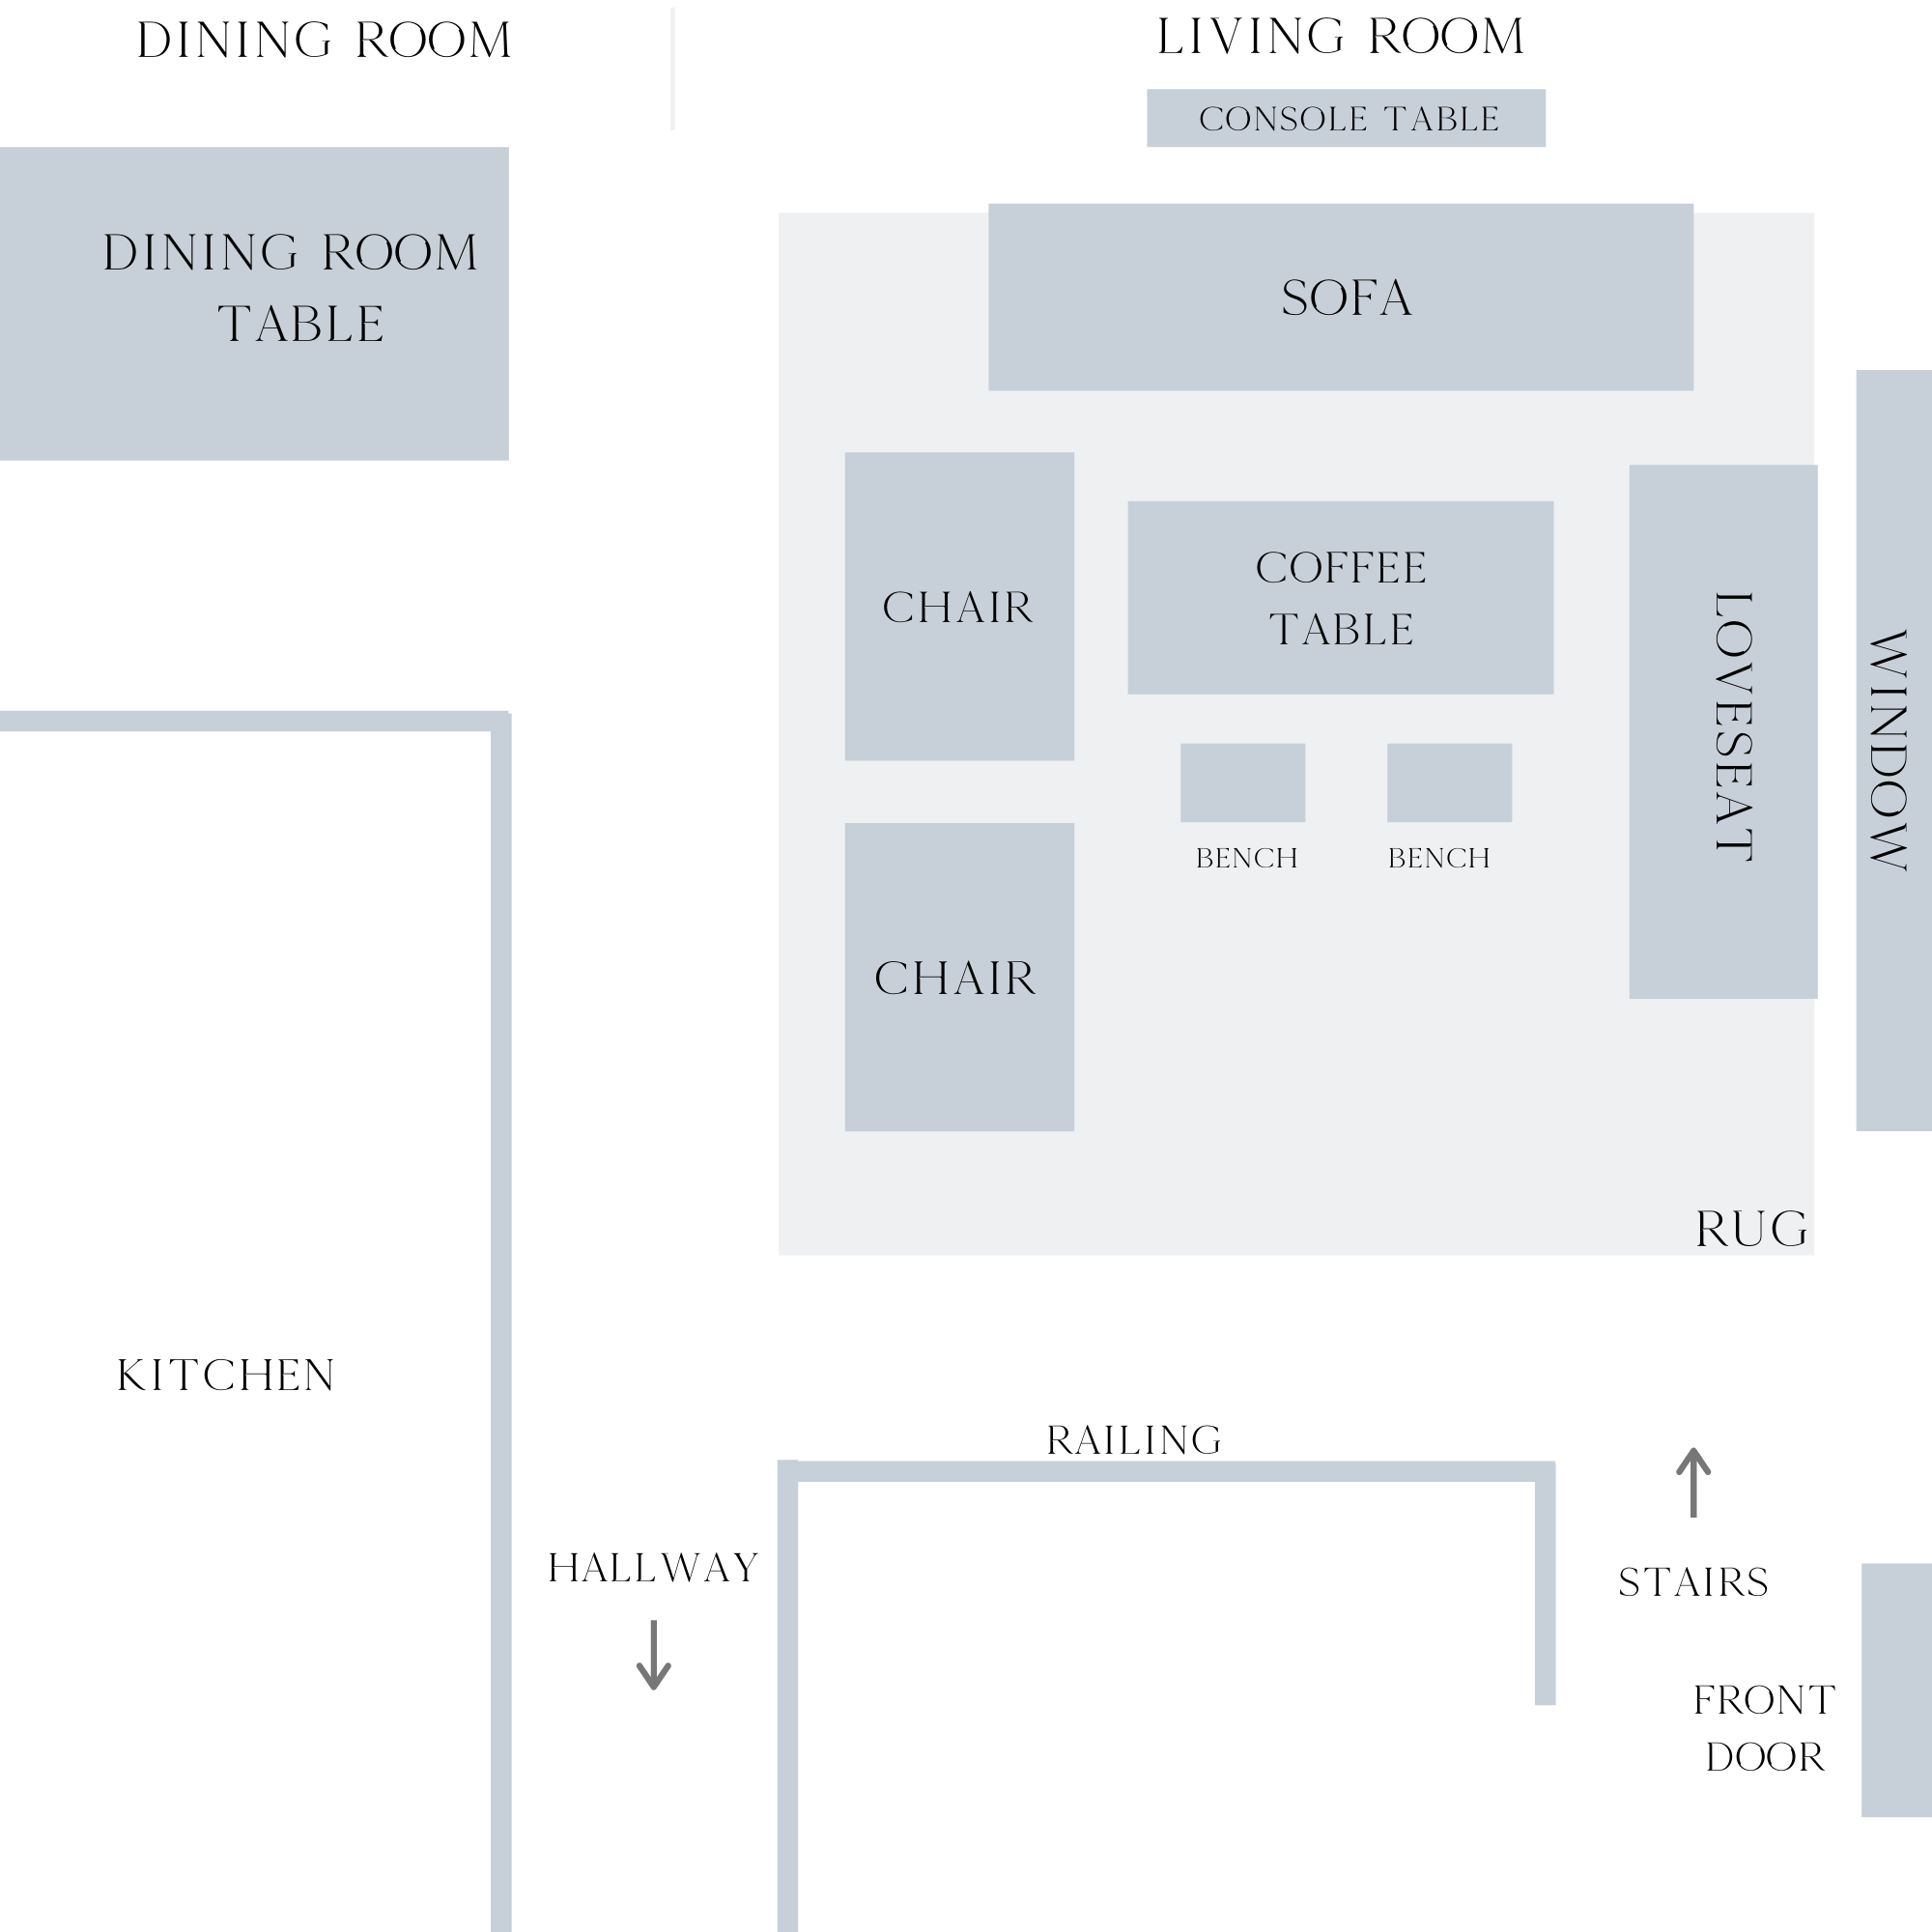 living-room-layout